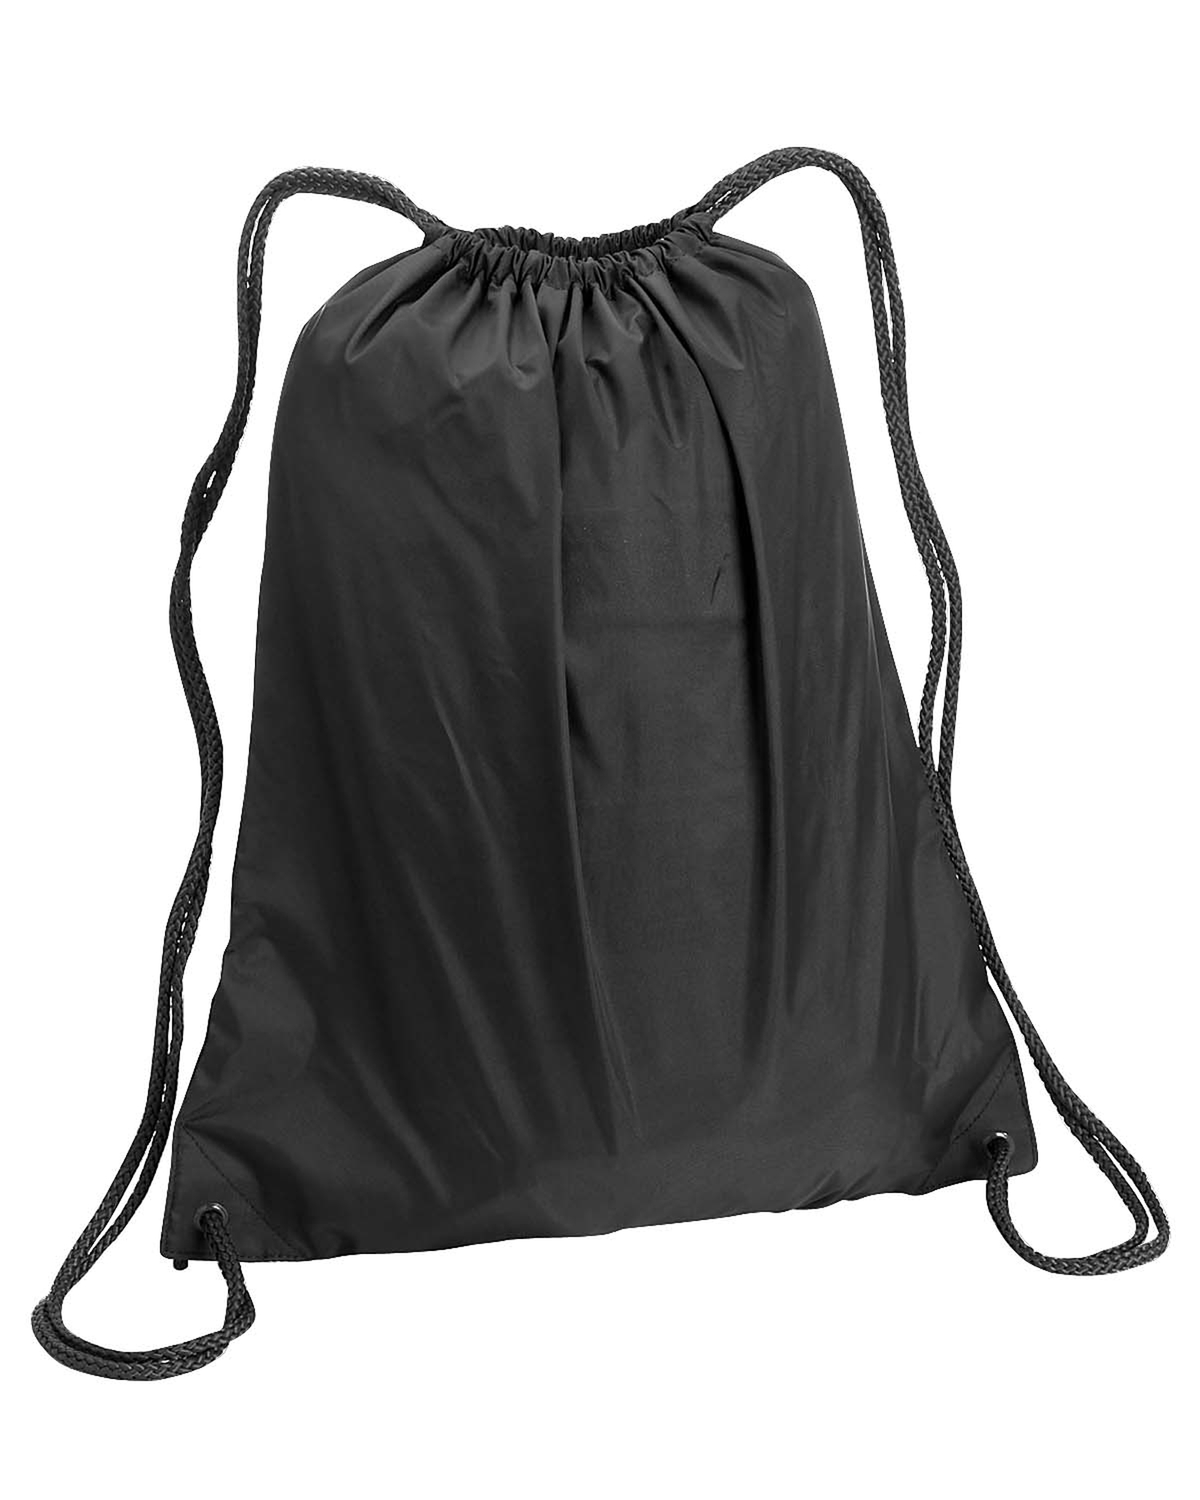 Liberty Bags 8882 - Large Drawstring Pack with DUROcord